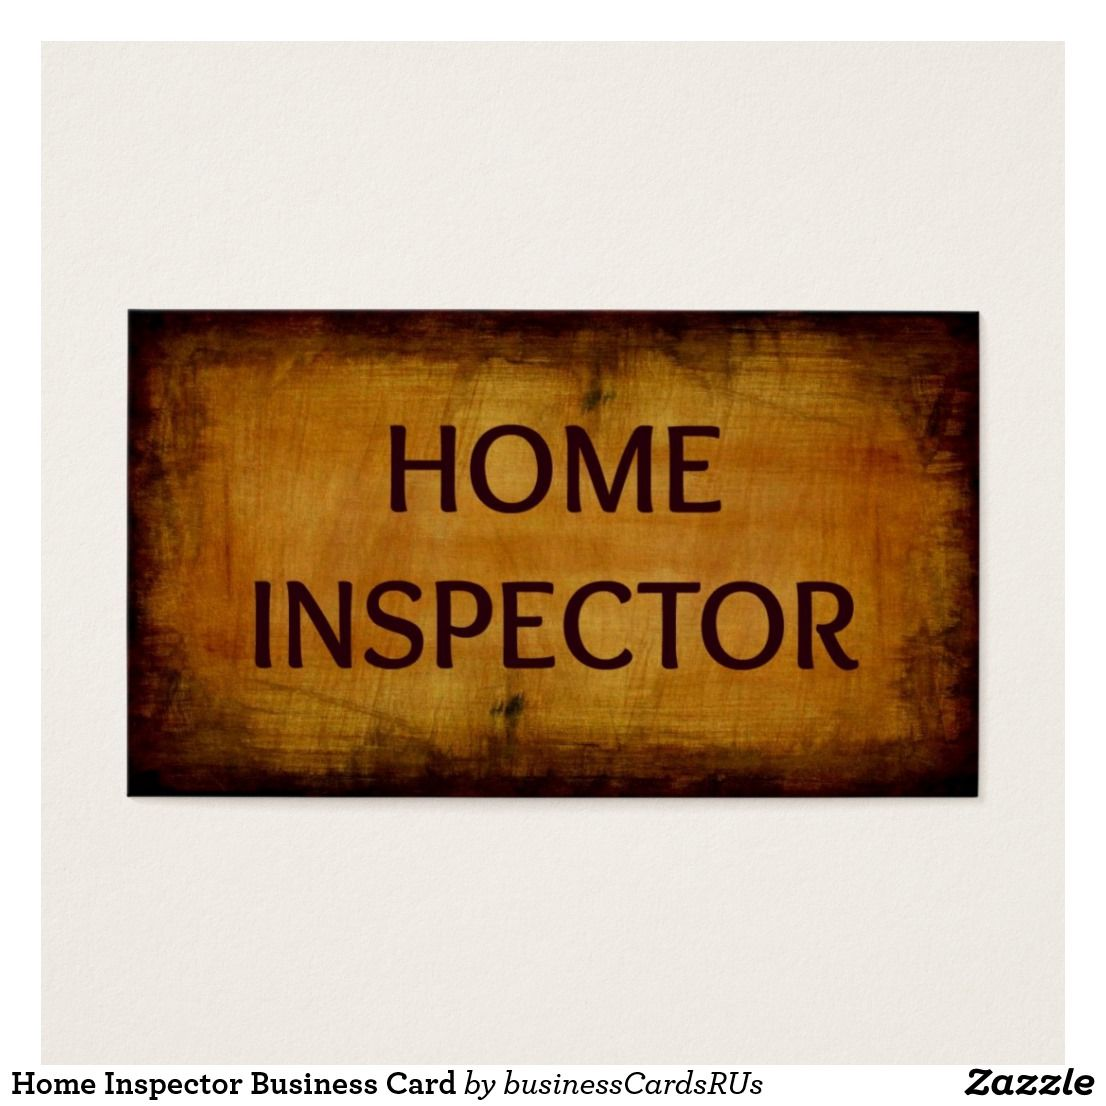 Home inspector business card business cards and business home inspector business card colourmoves